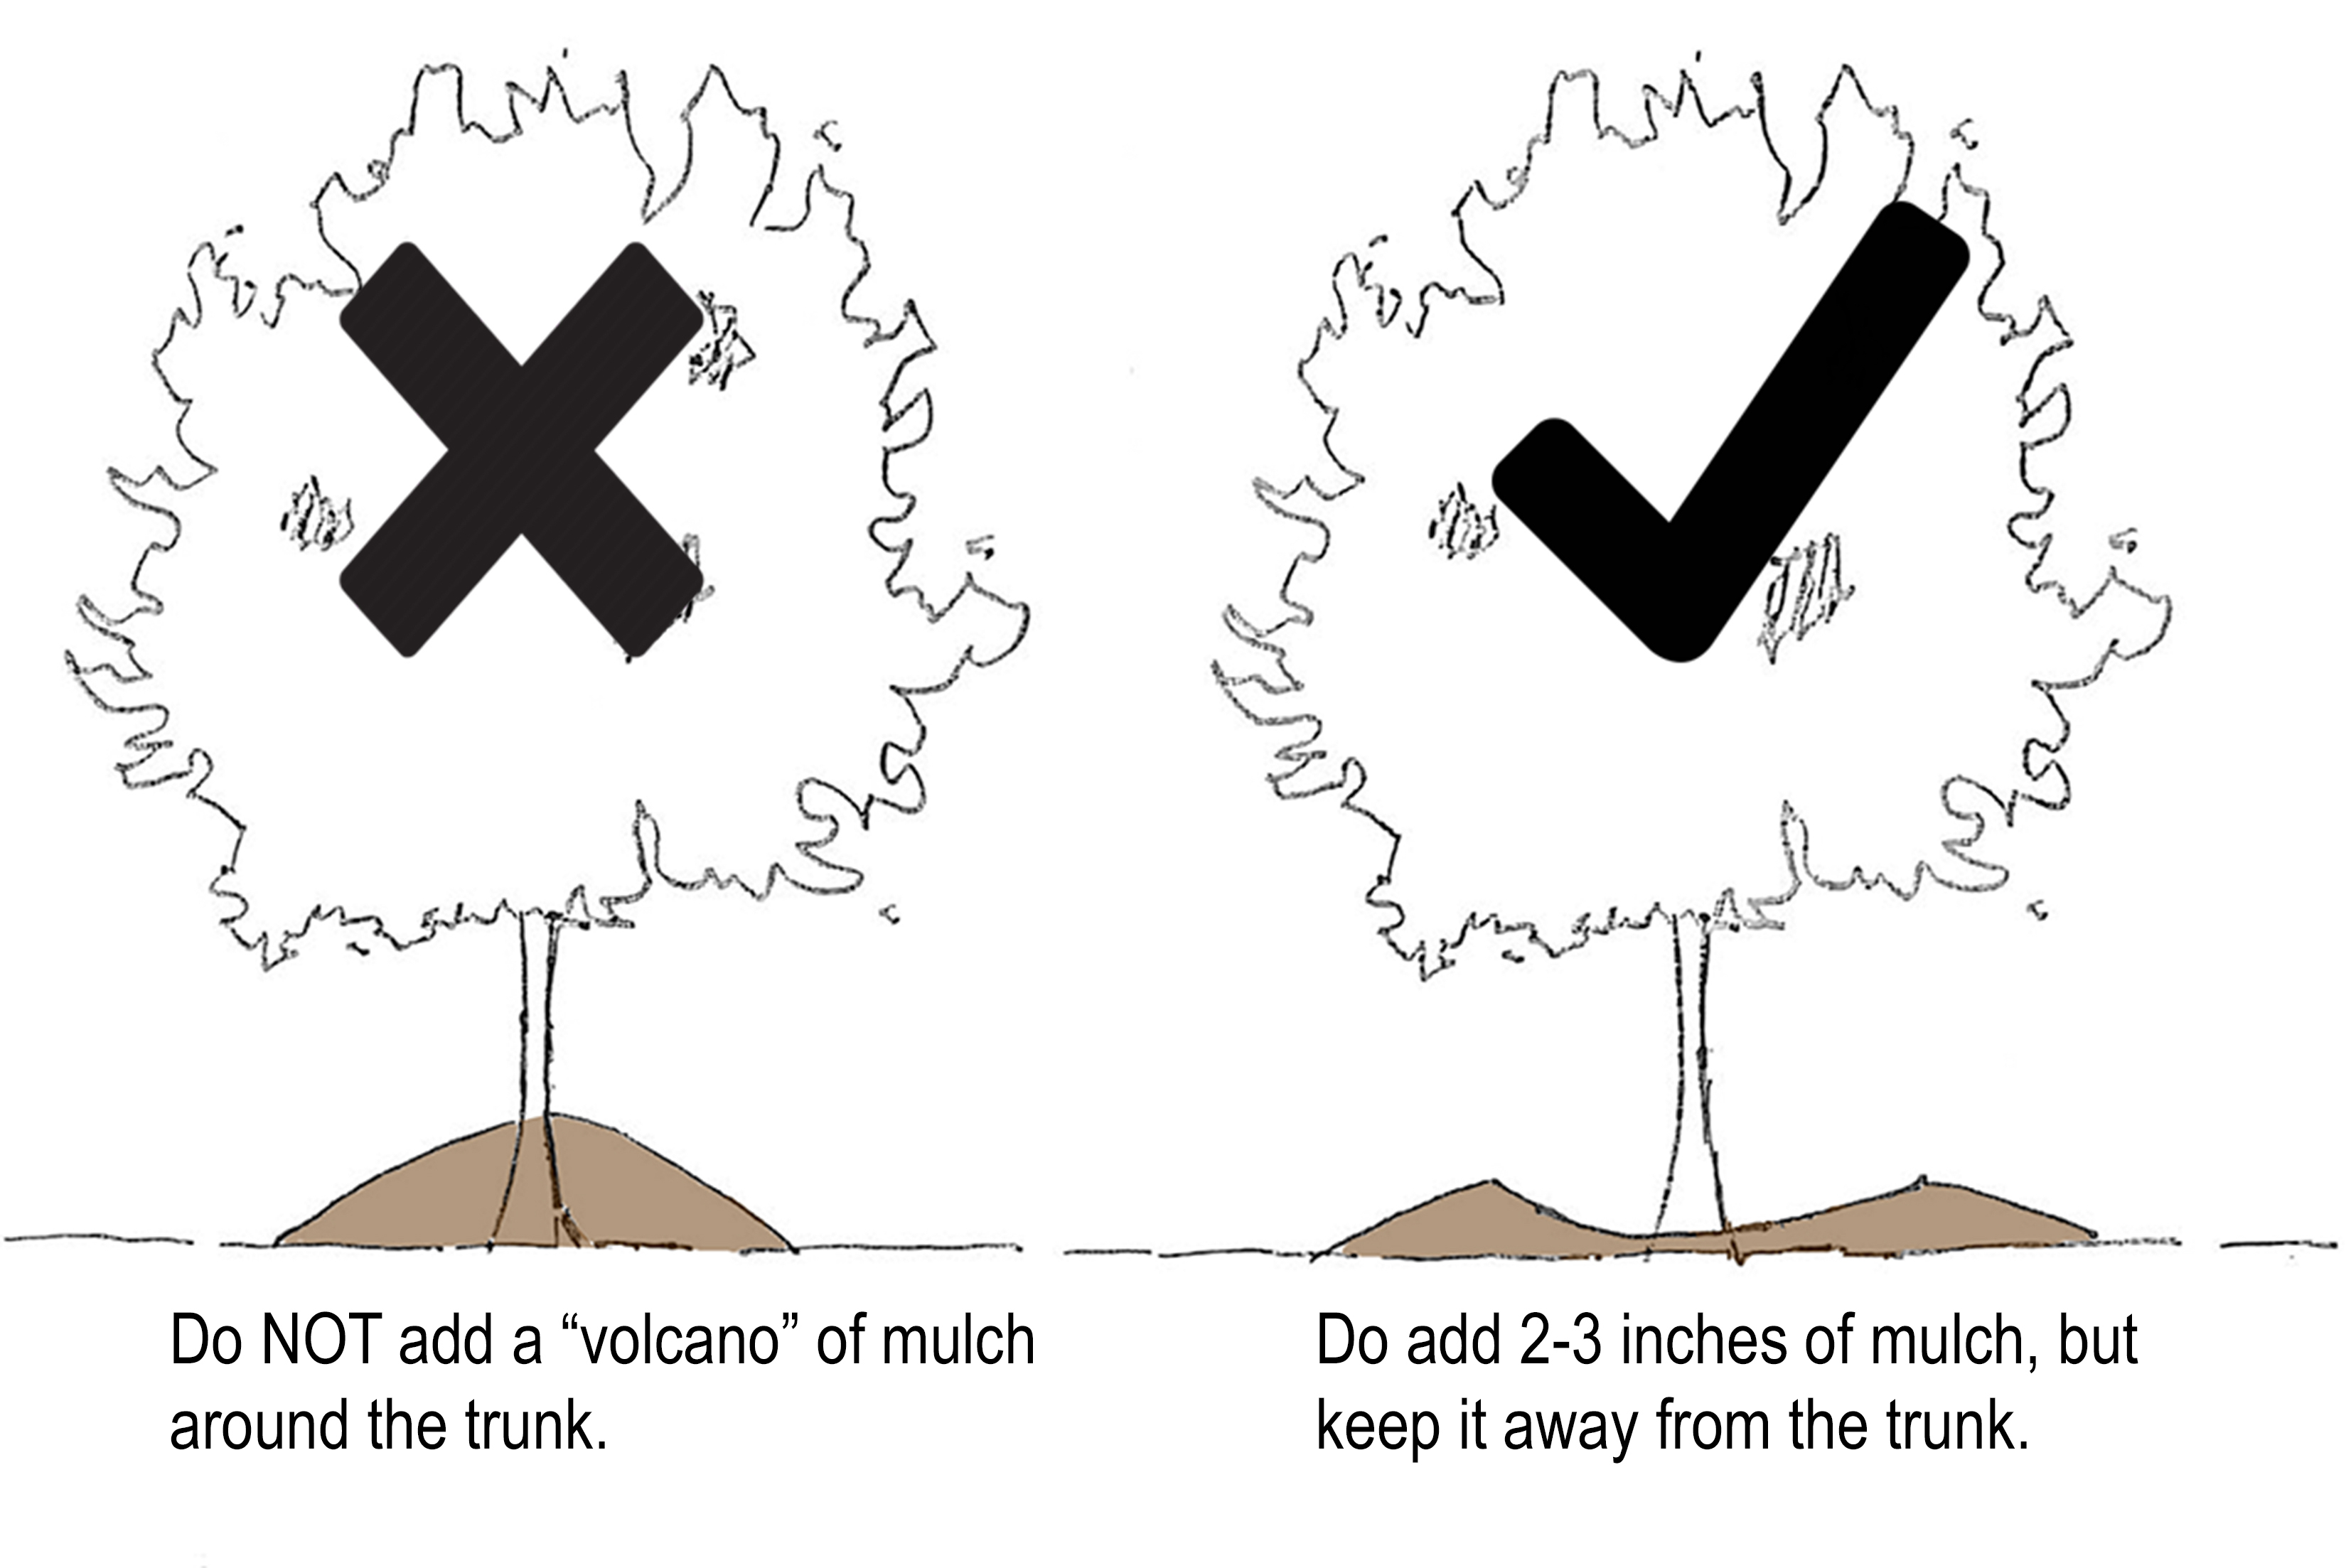 "Add 2-3"" of mulch around trees, but keep it away from the trunk! Mulch ""volcanoes"" can damage trees."